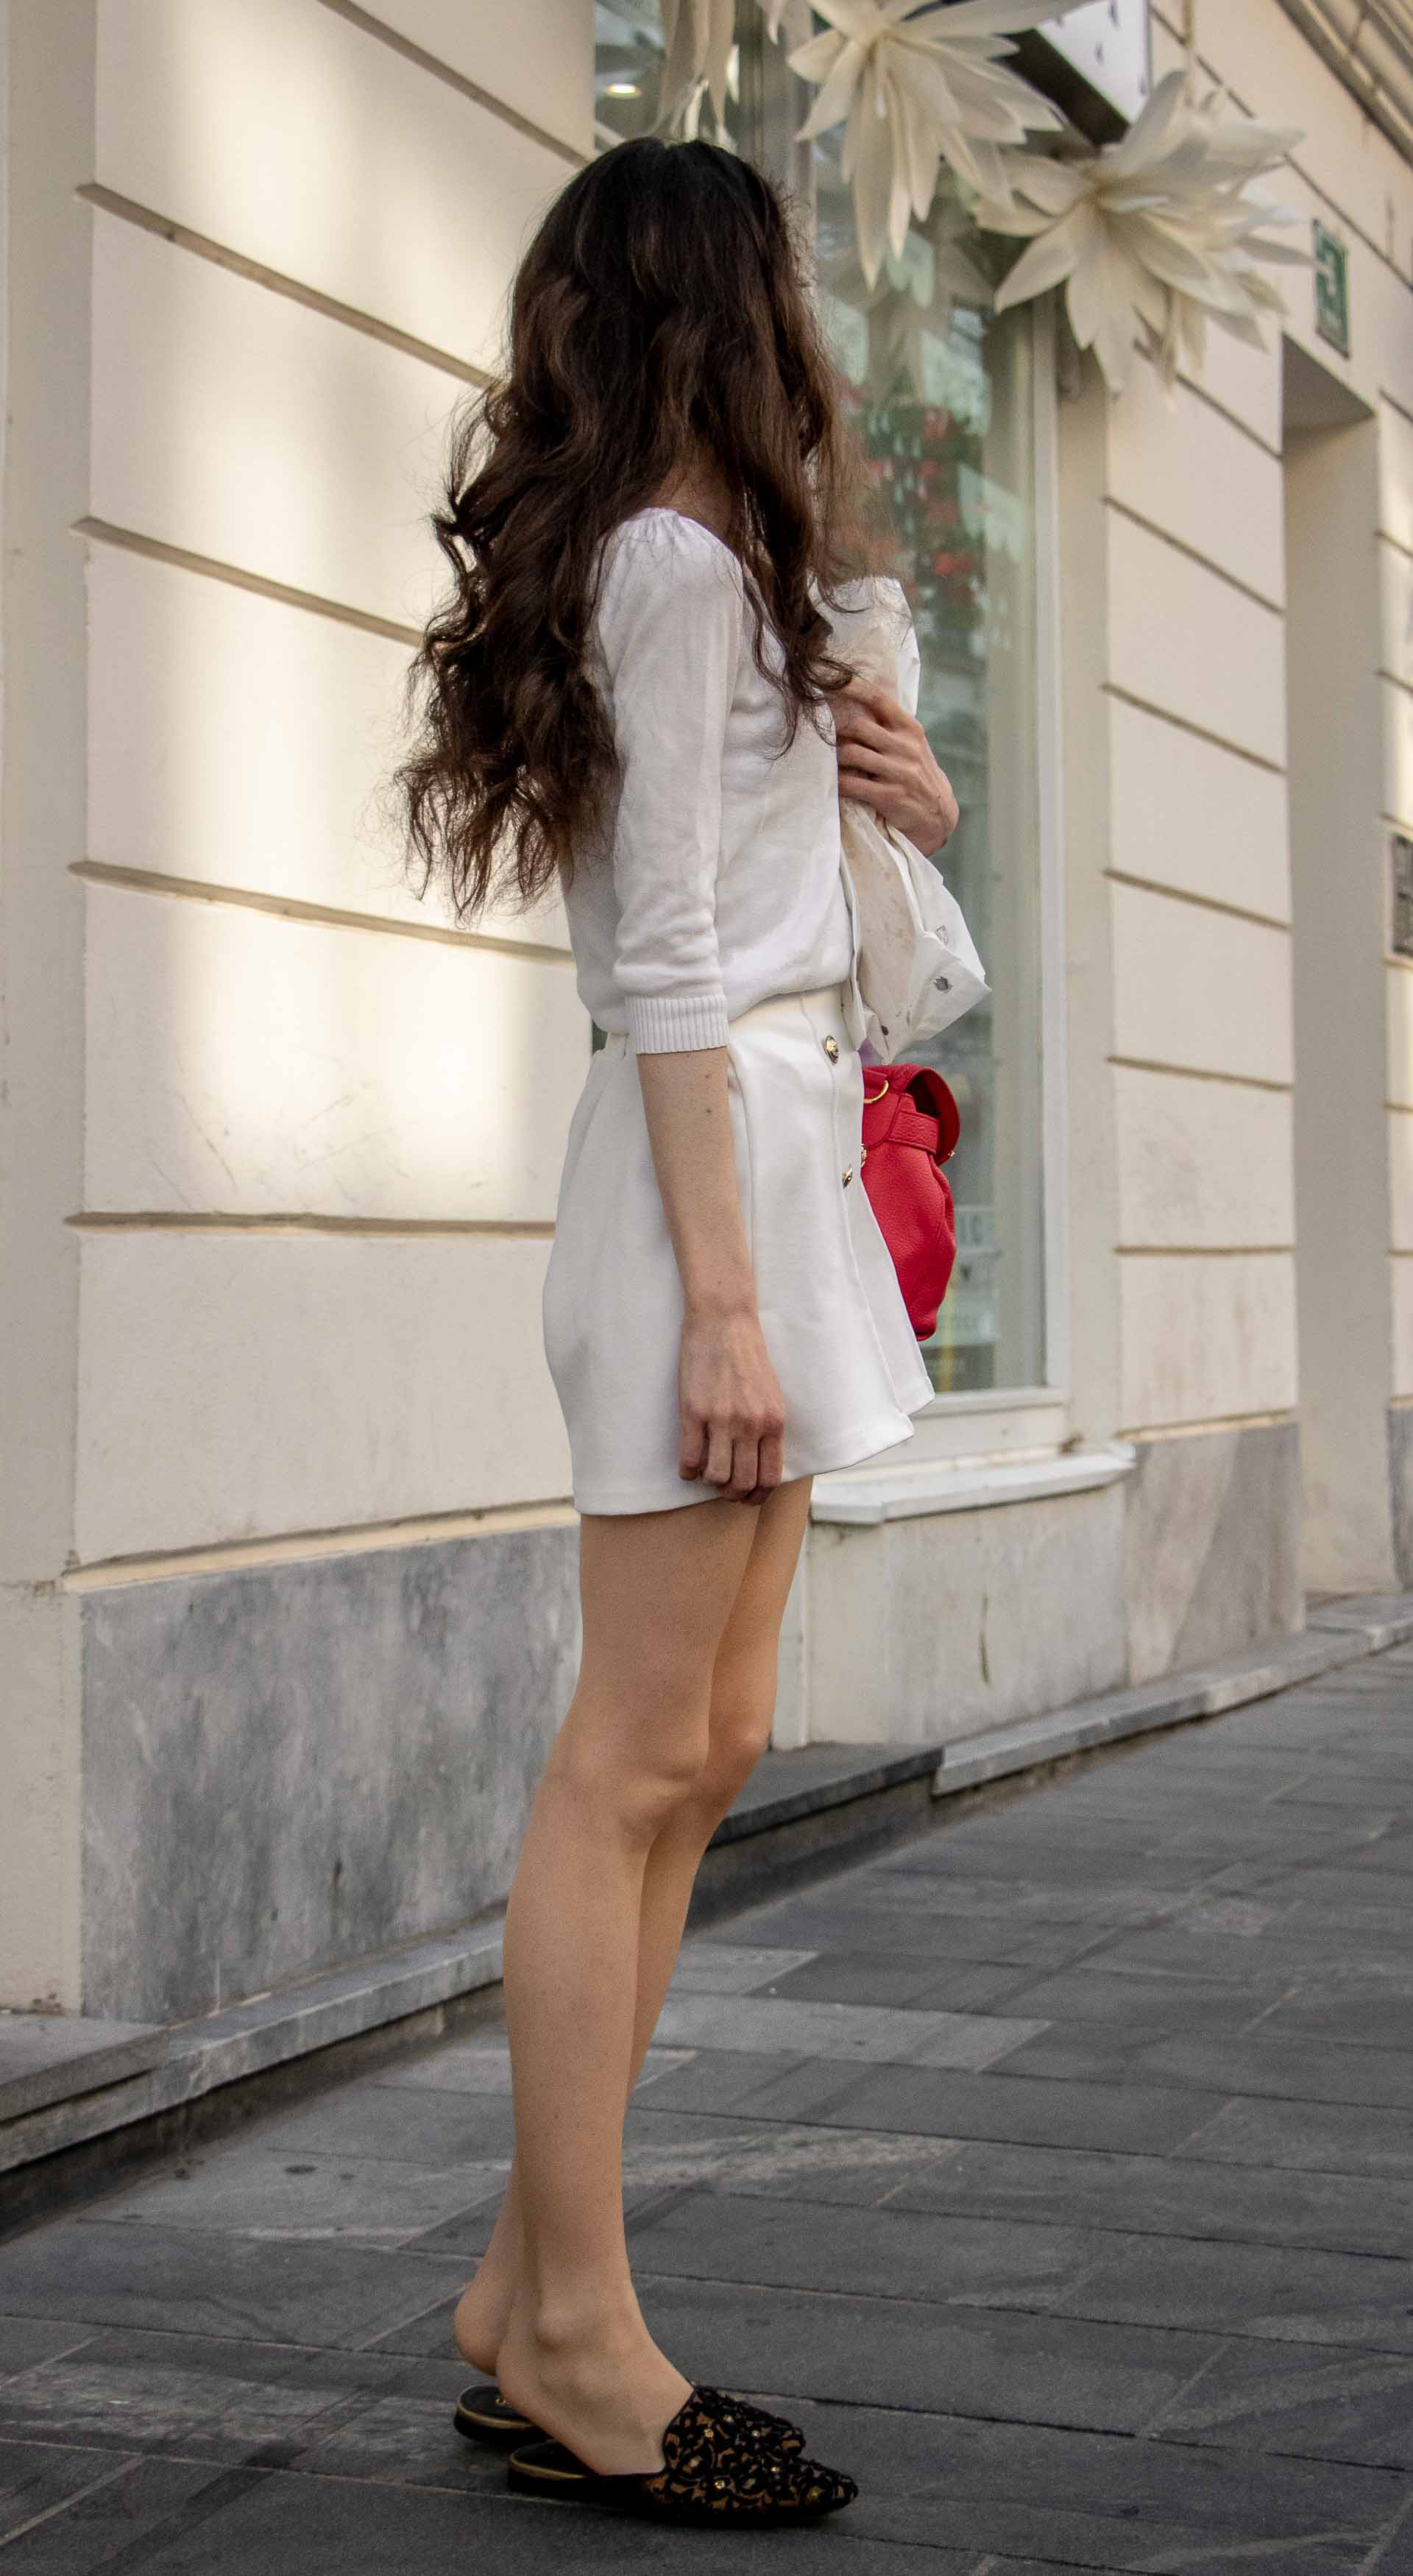 Beautiful Slovenian Fashion Blogger Veronika Lipar of Brunette from Wall dressed in all in white outfit, a white sweater, white tailored shorts, black flat slipper mules, pink top handle bag, a paper bag when it's hot